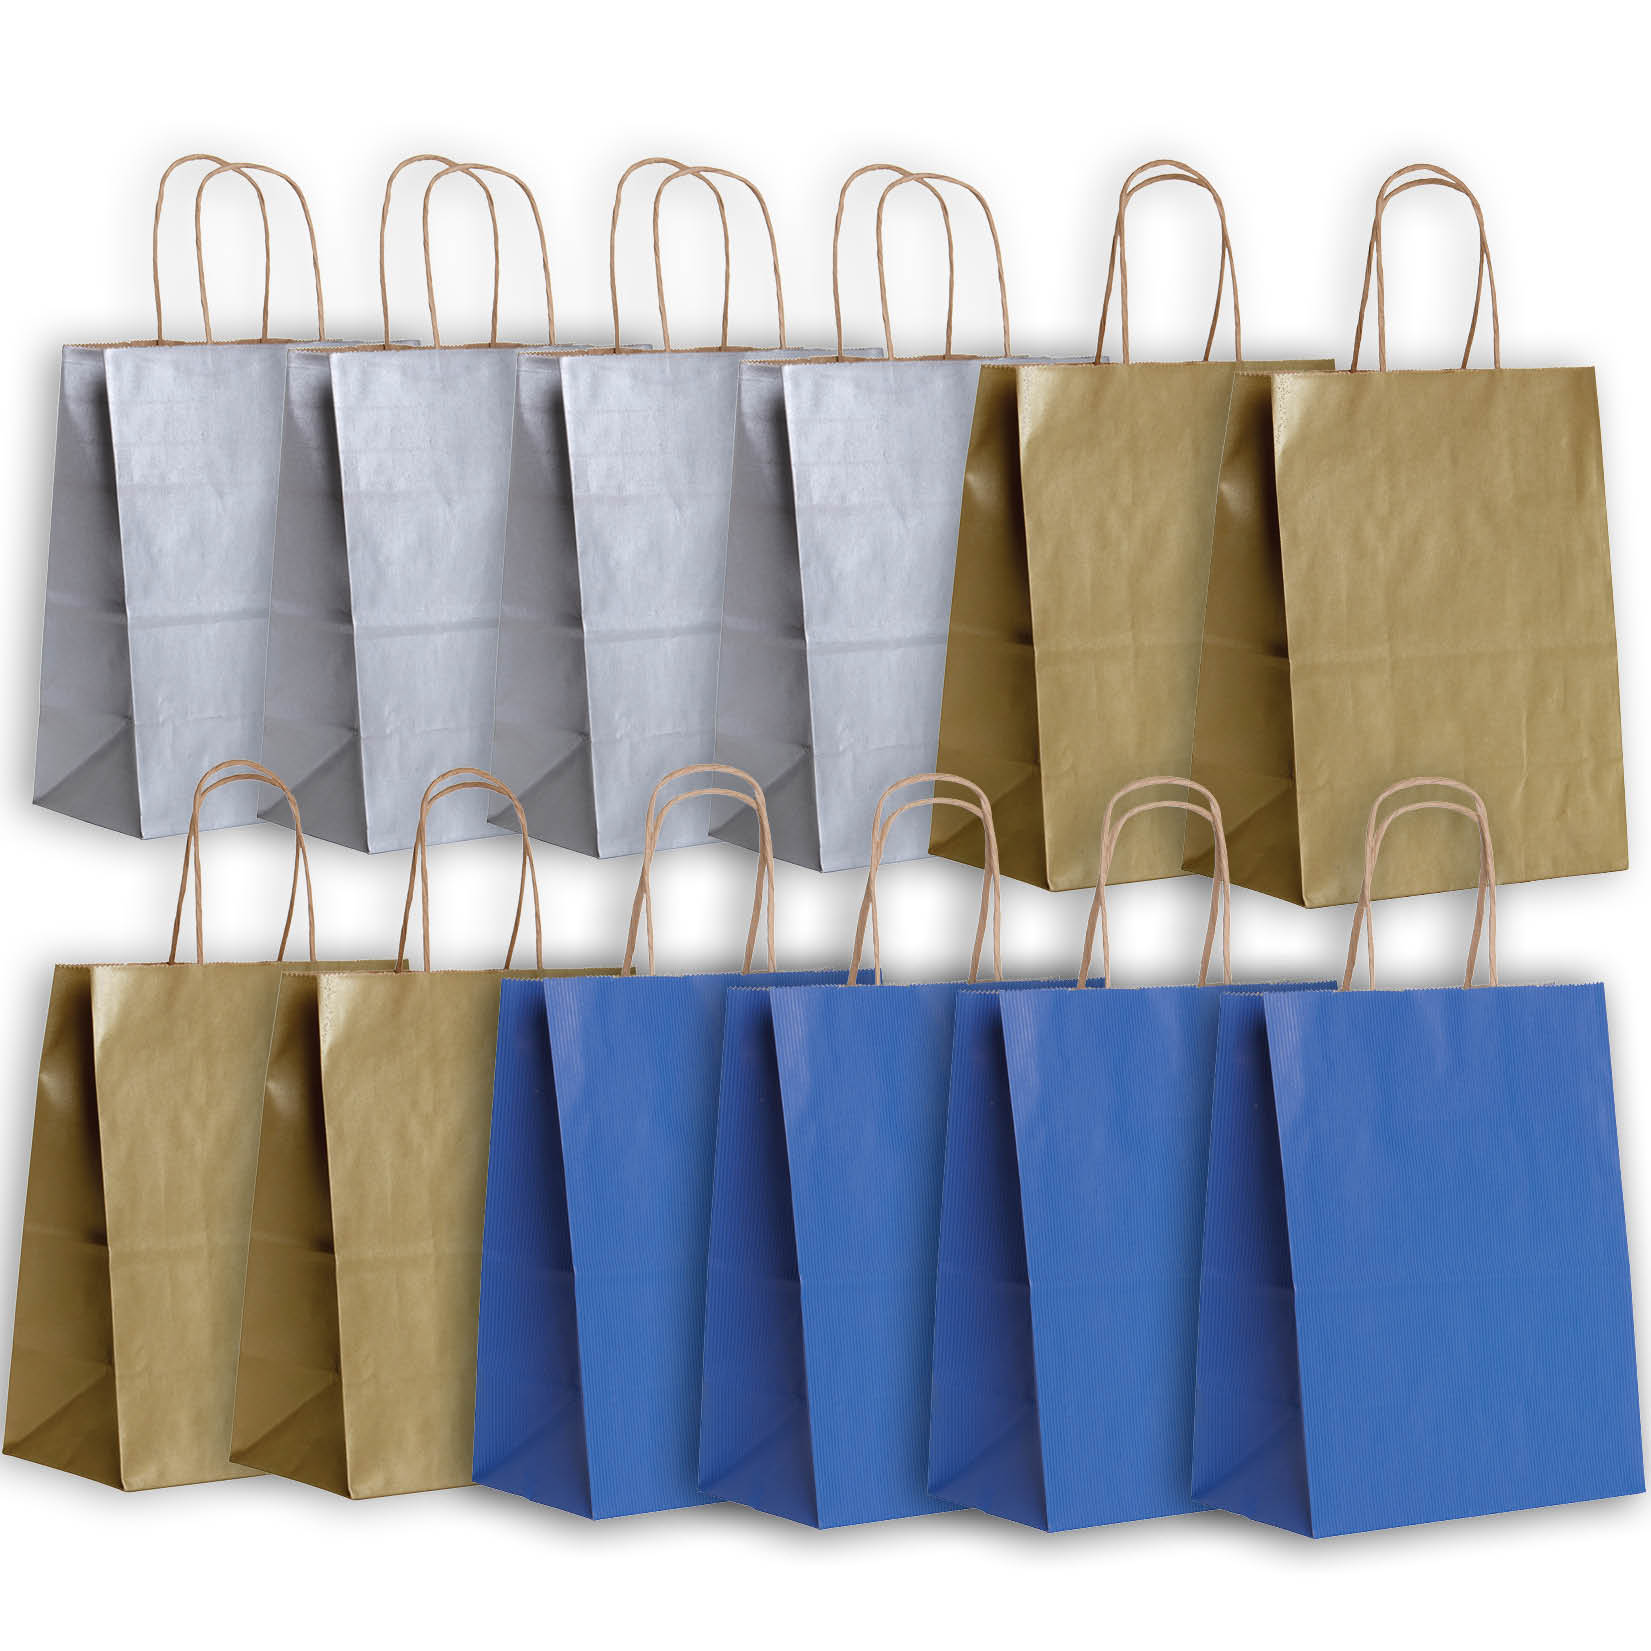 Jillson & Roberts Eco-Friendly Kraft Medium Gift Bag Assortment, Hanukkah (12 Bags)